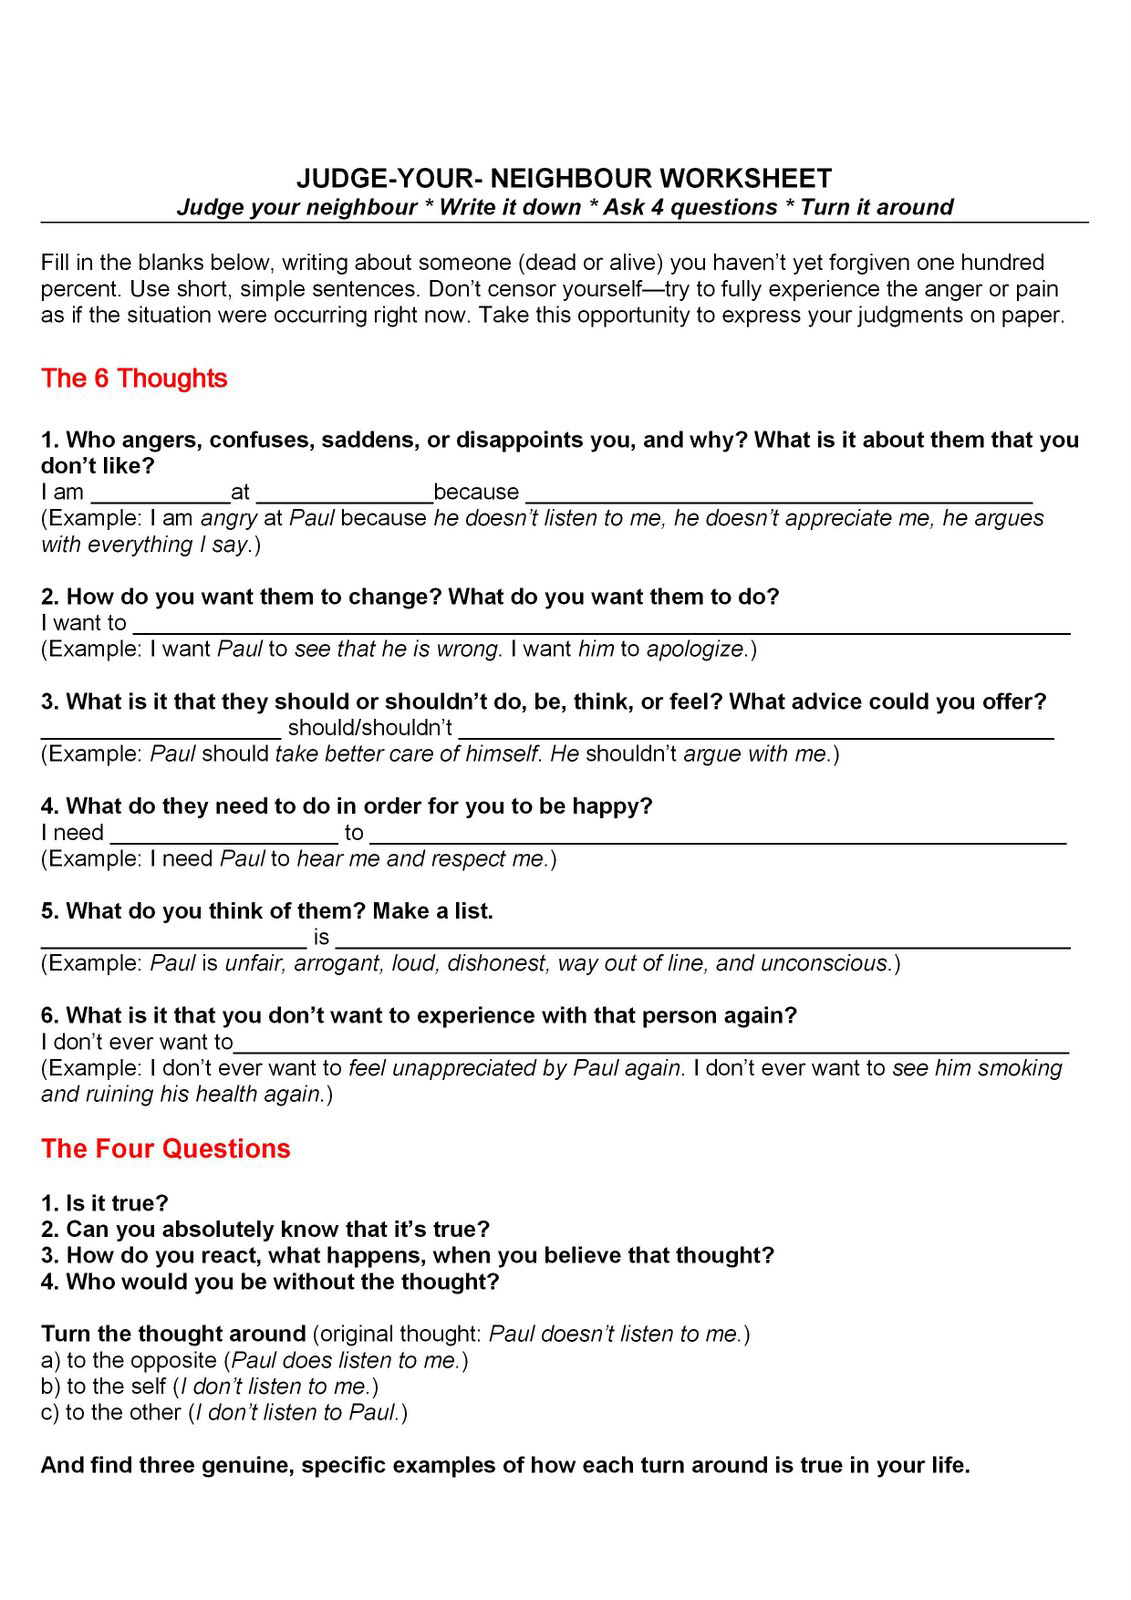 Worksheets Byron Katie Worksheet july 2014 counseling tidbits page 2 judge your neighbour worksheet